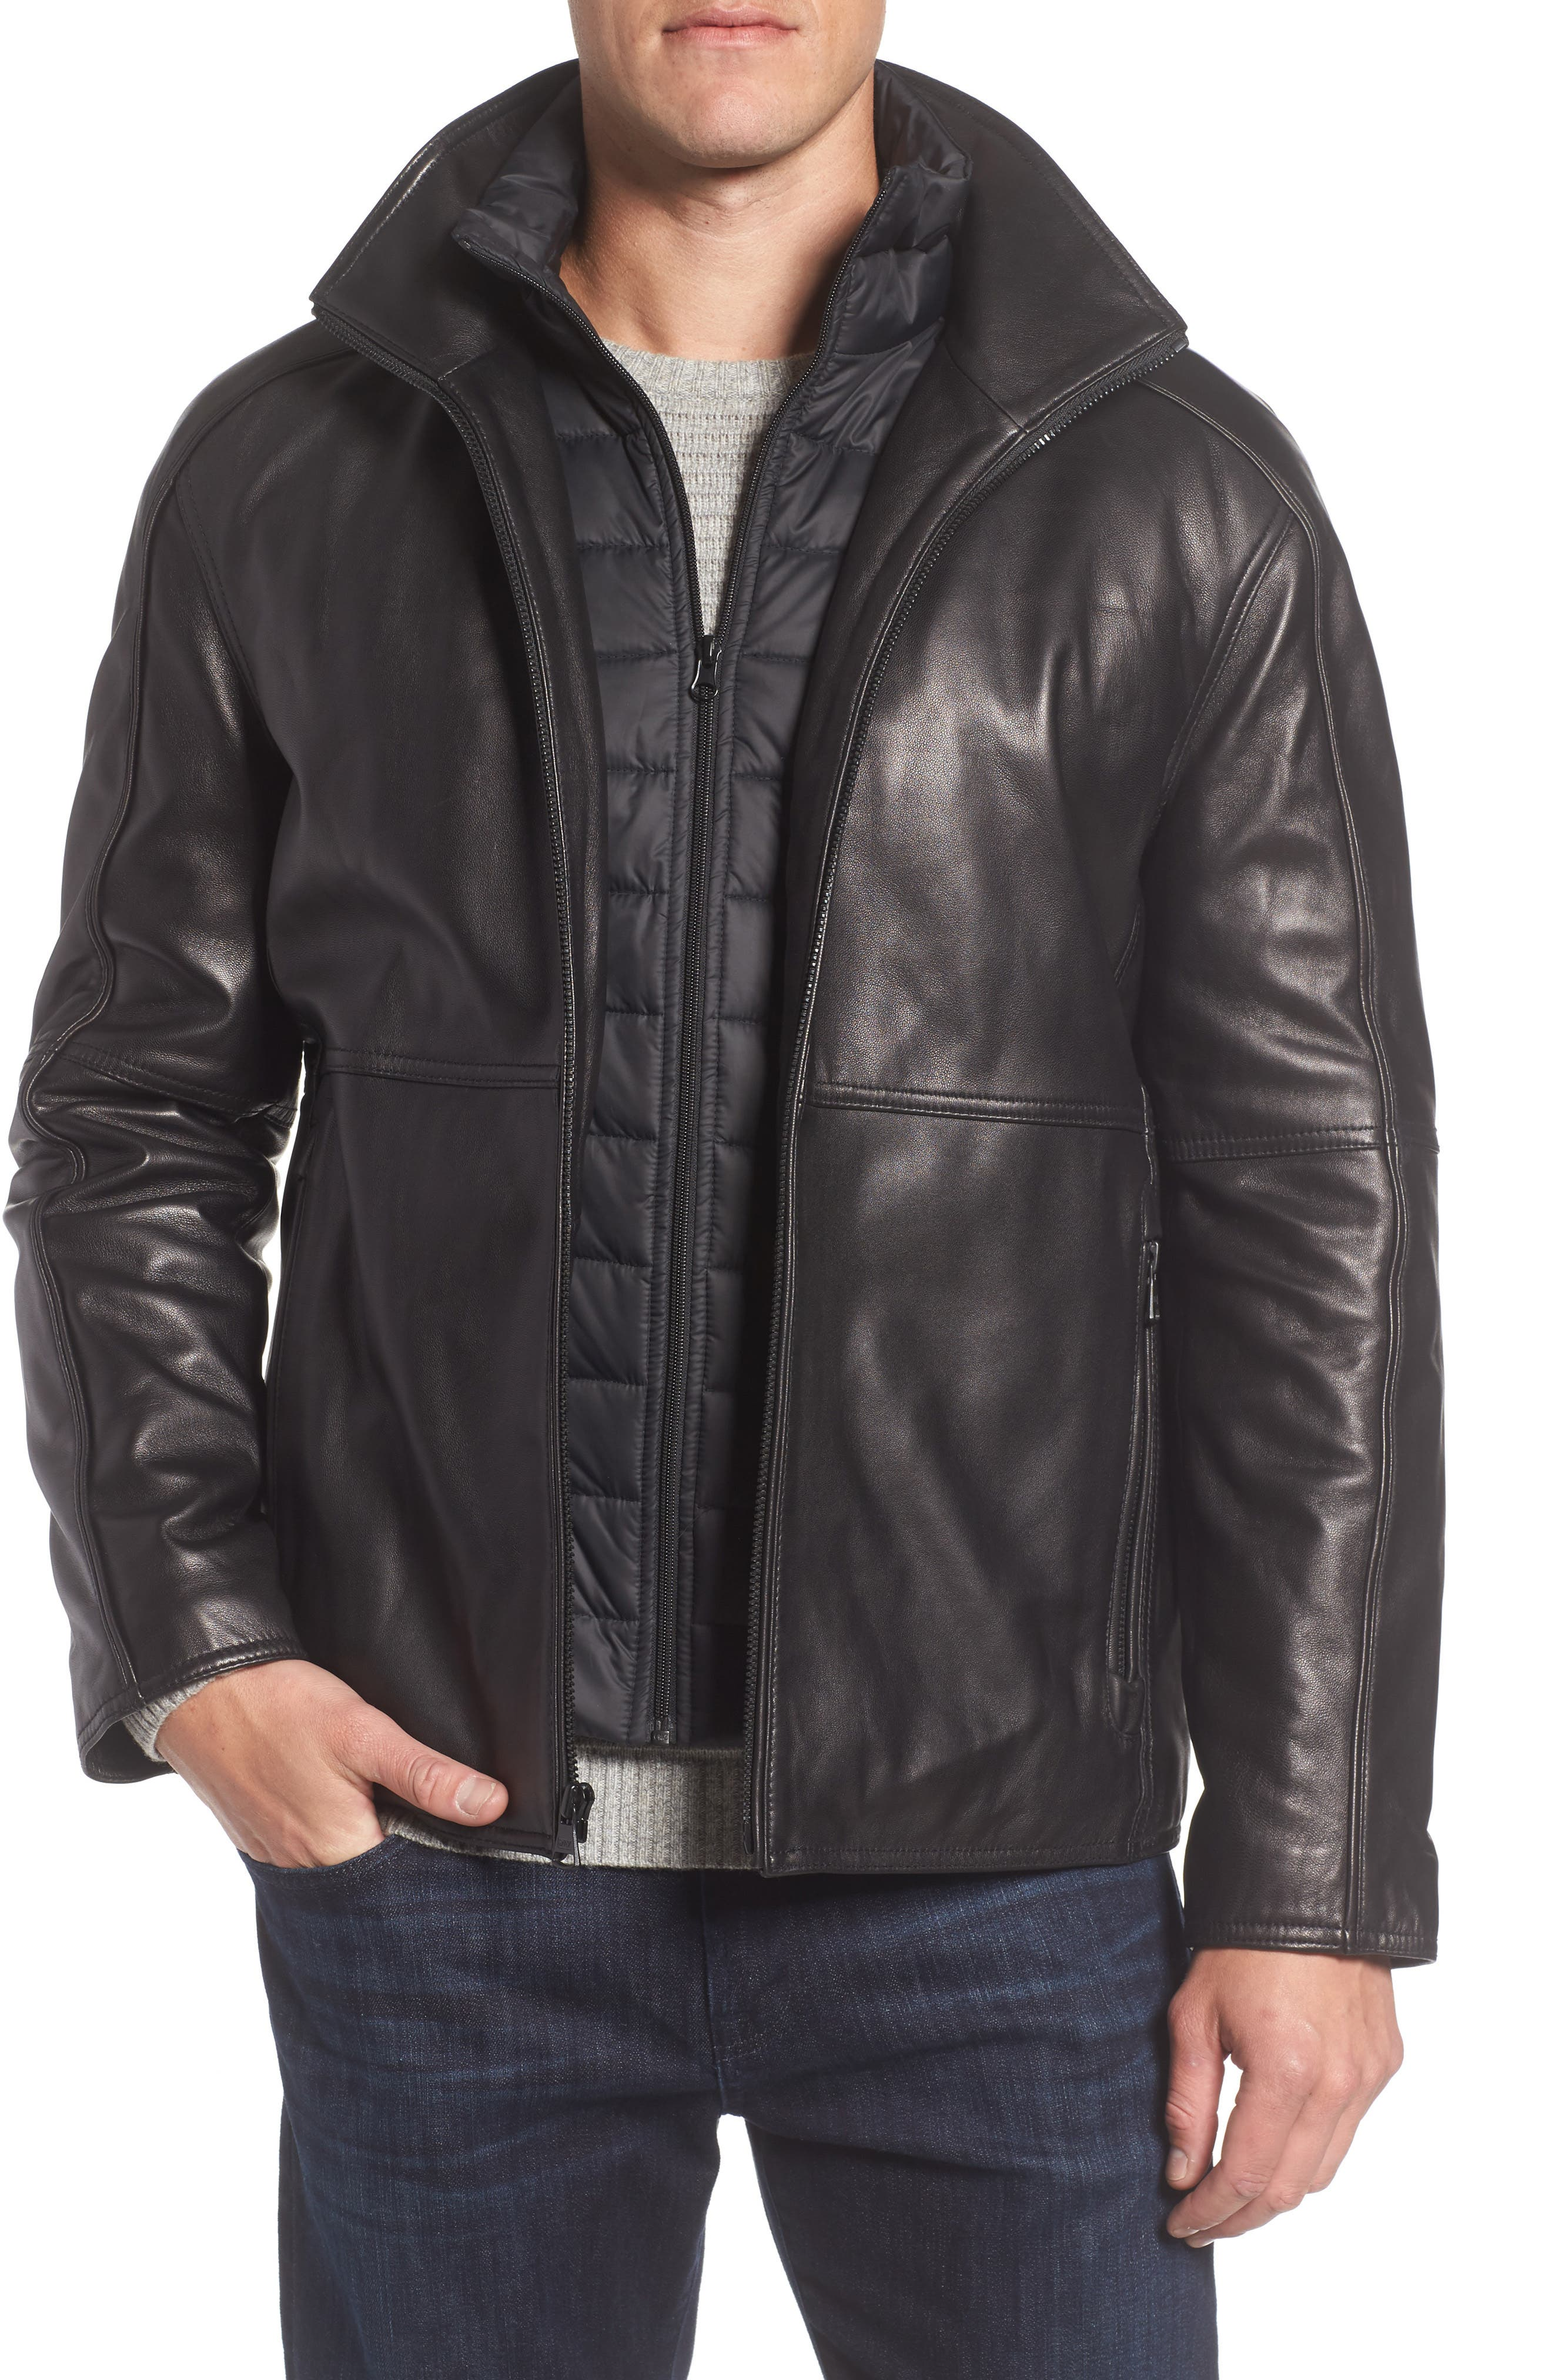 Alternate Image 1 Selected - Marc New York Leather Jacket with Quilted Insert